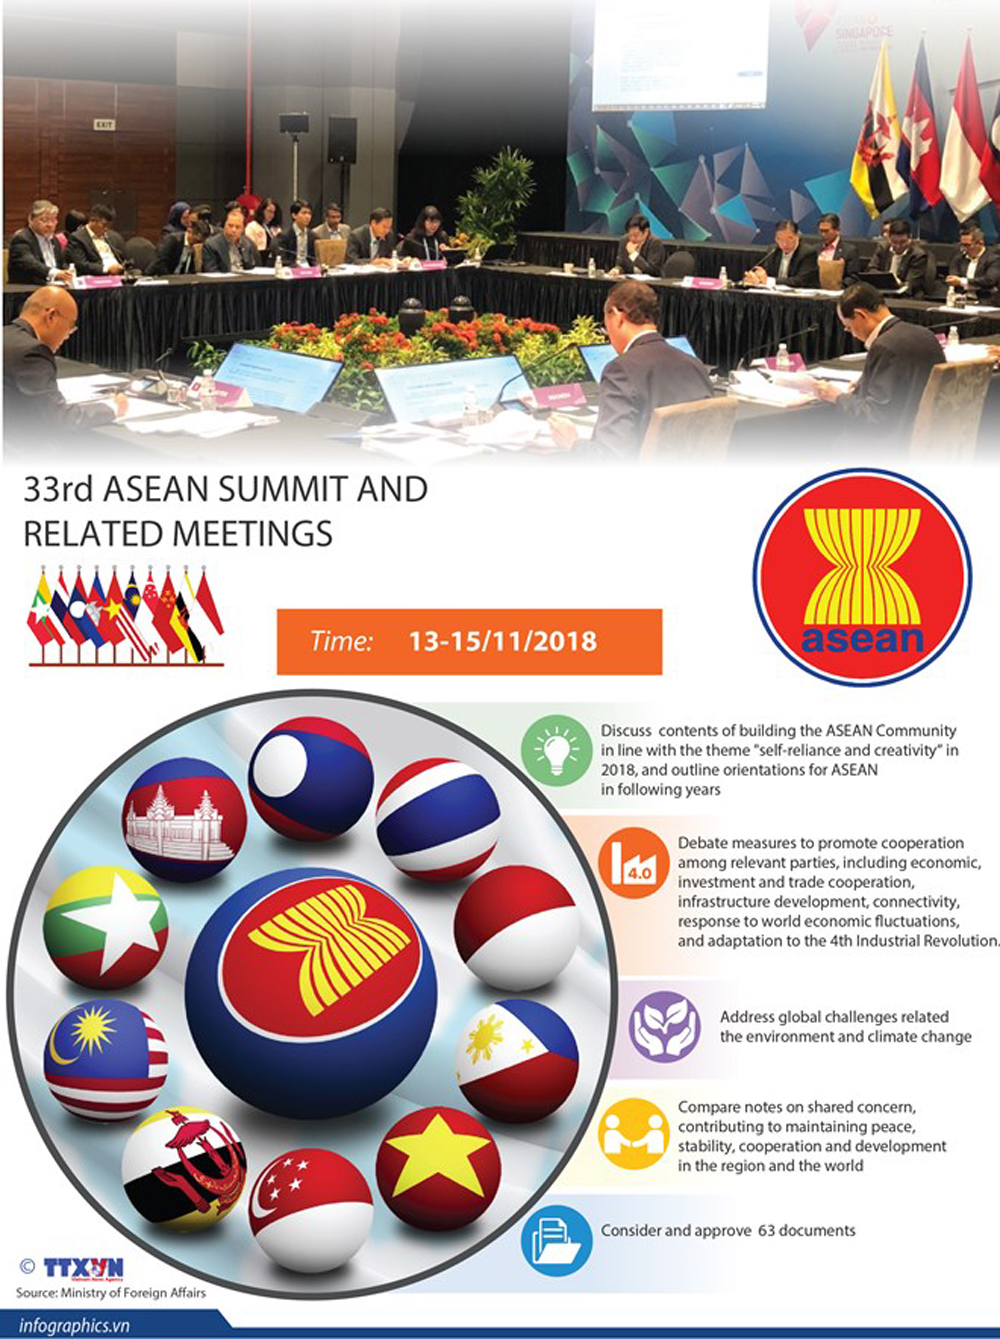 33rd ASEAN Summit, related meetings, self reliance, outline orientation, economic cooperation, world economic fluctuation